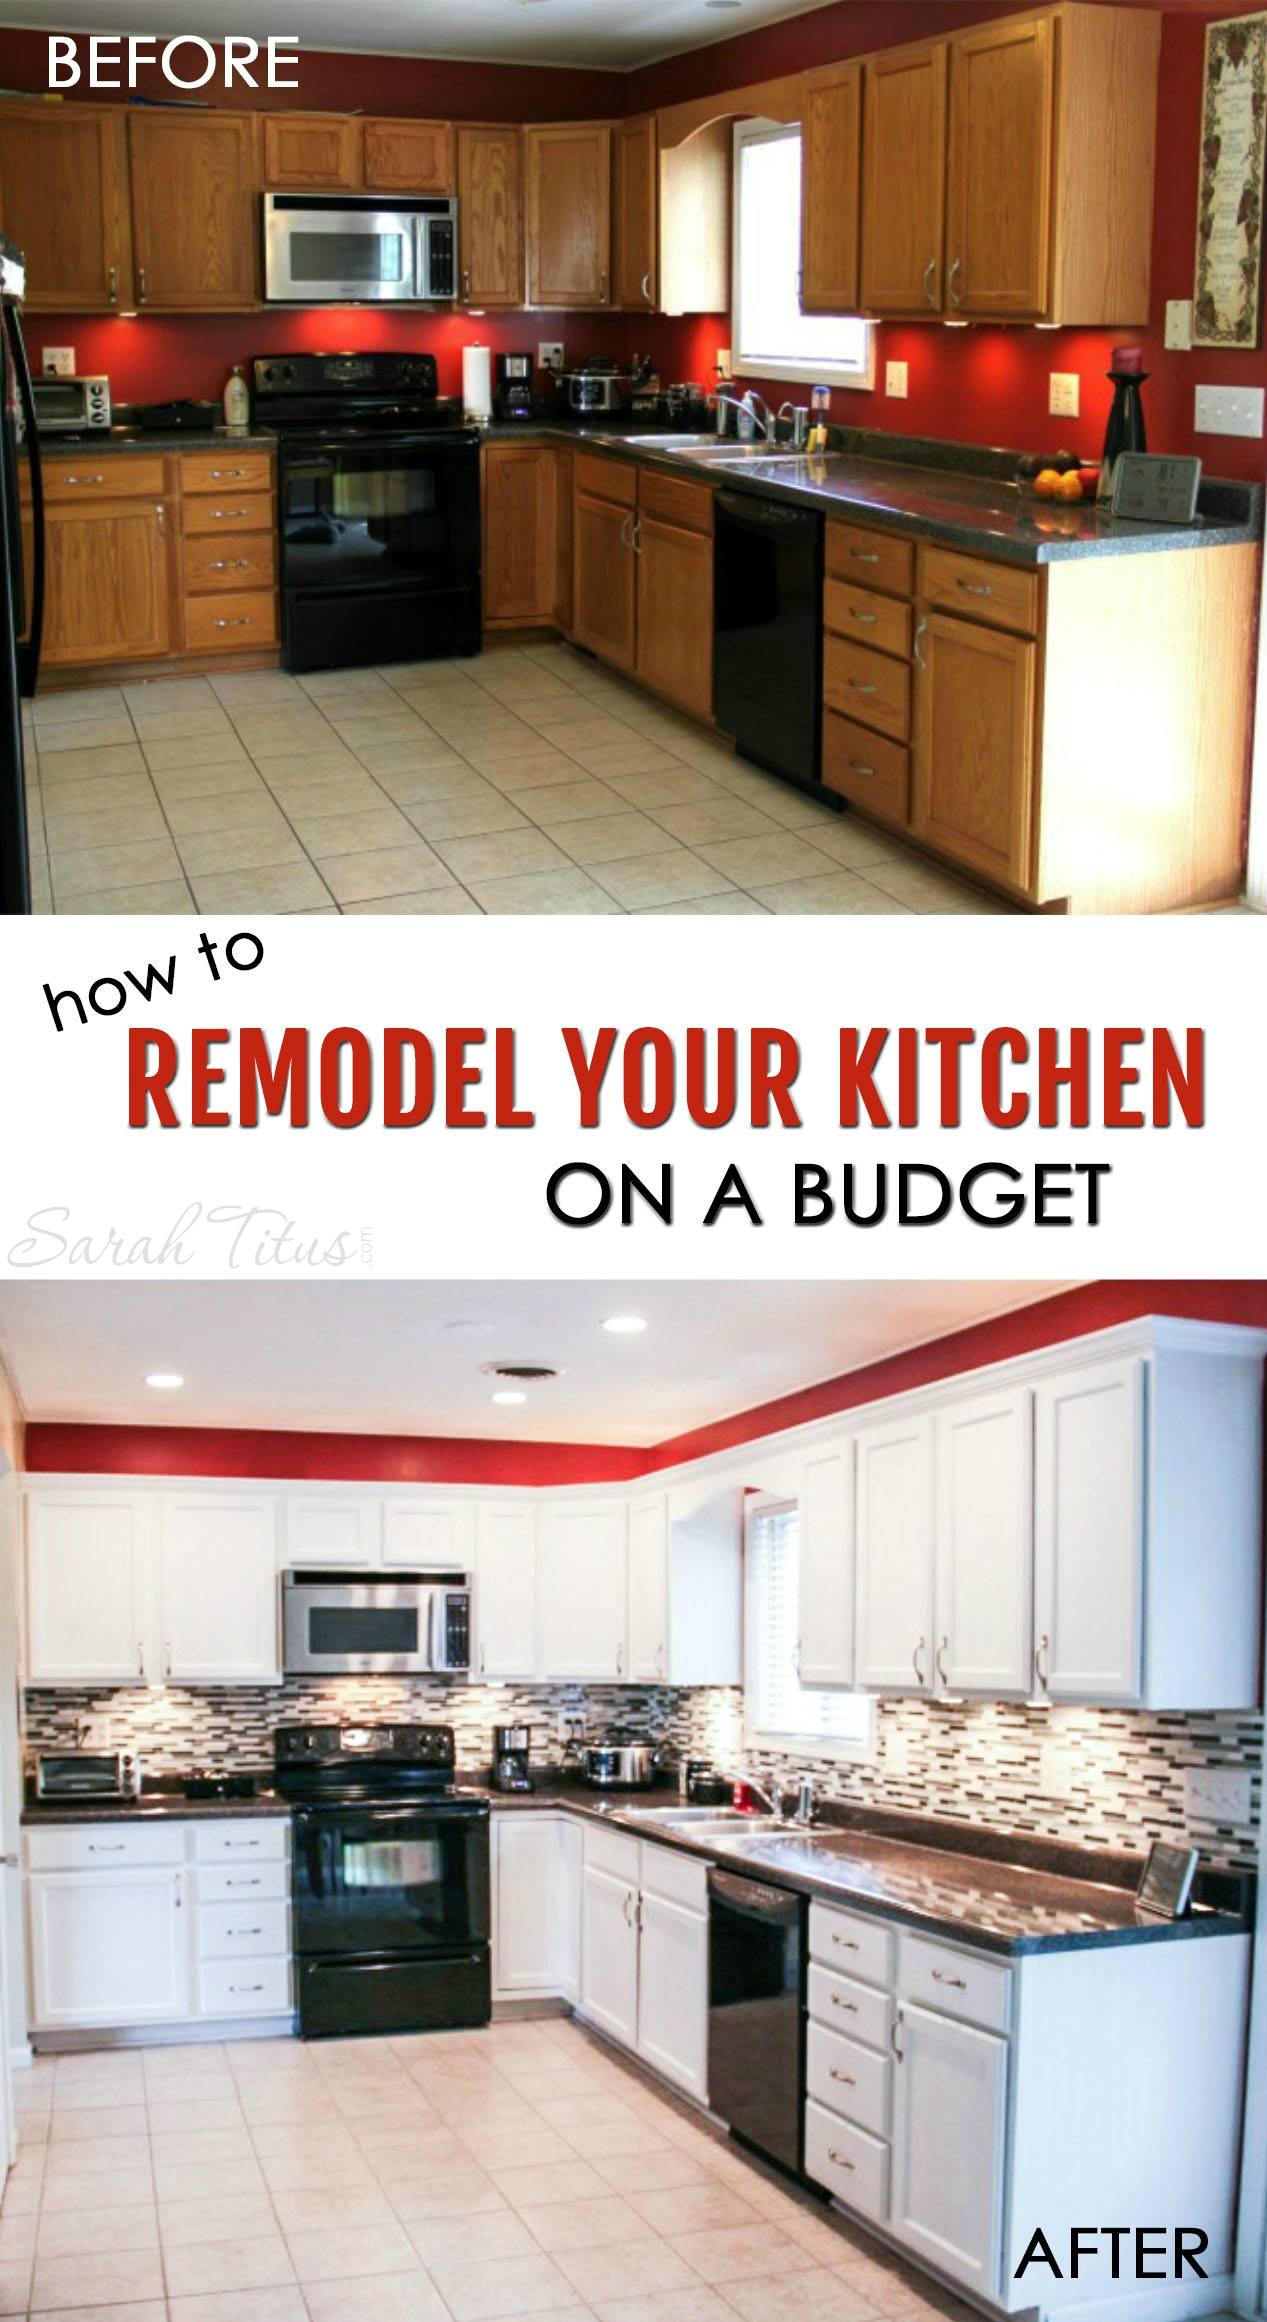 To Remodel Kitchen How To Remodel Your Kitchen On A Budget Sarah Titus